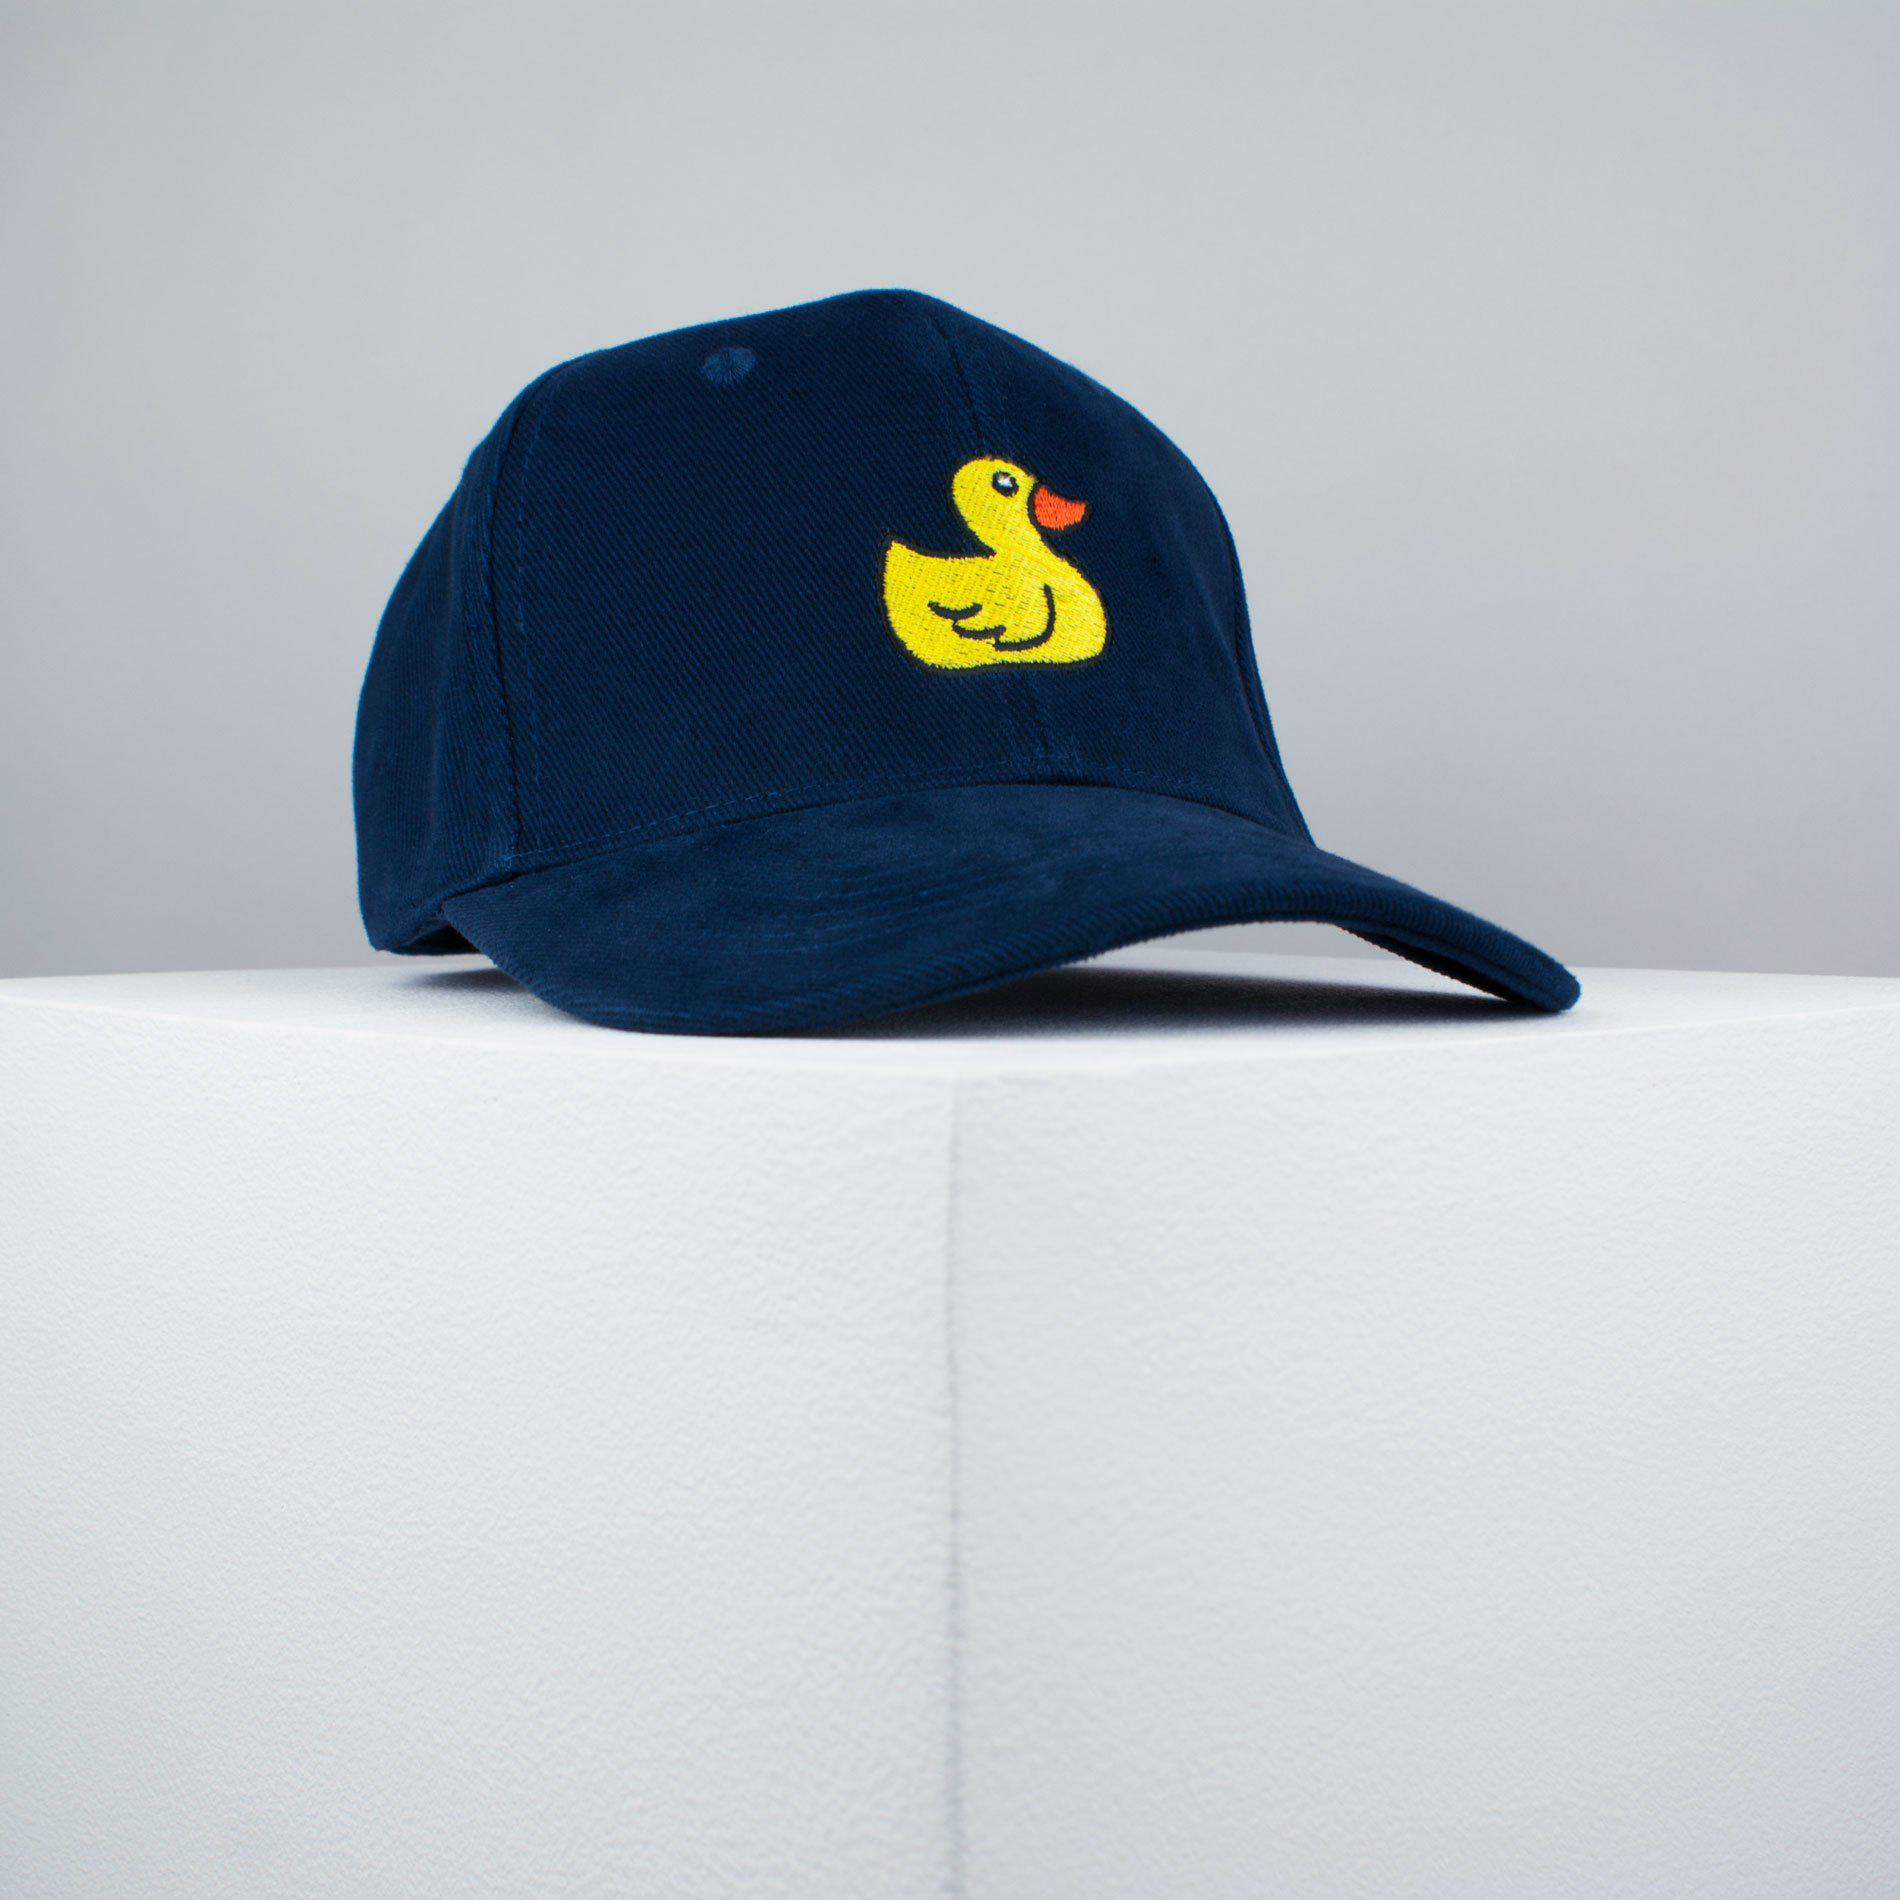 95c3c833e09 Rubber duck embroidered baseball cap navy   animal   patches   duck    embroidery   patch ...